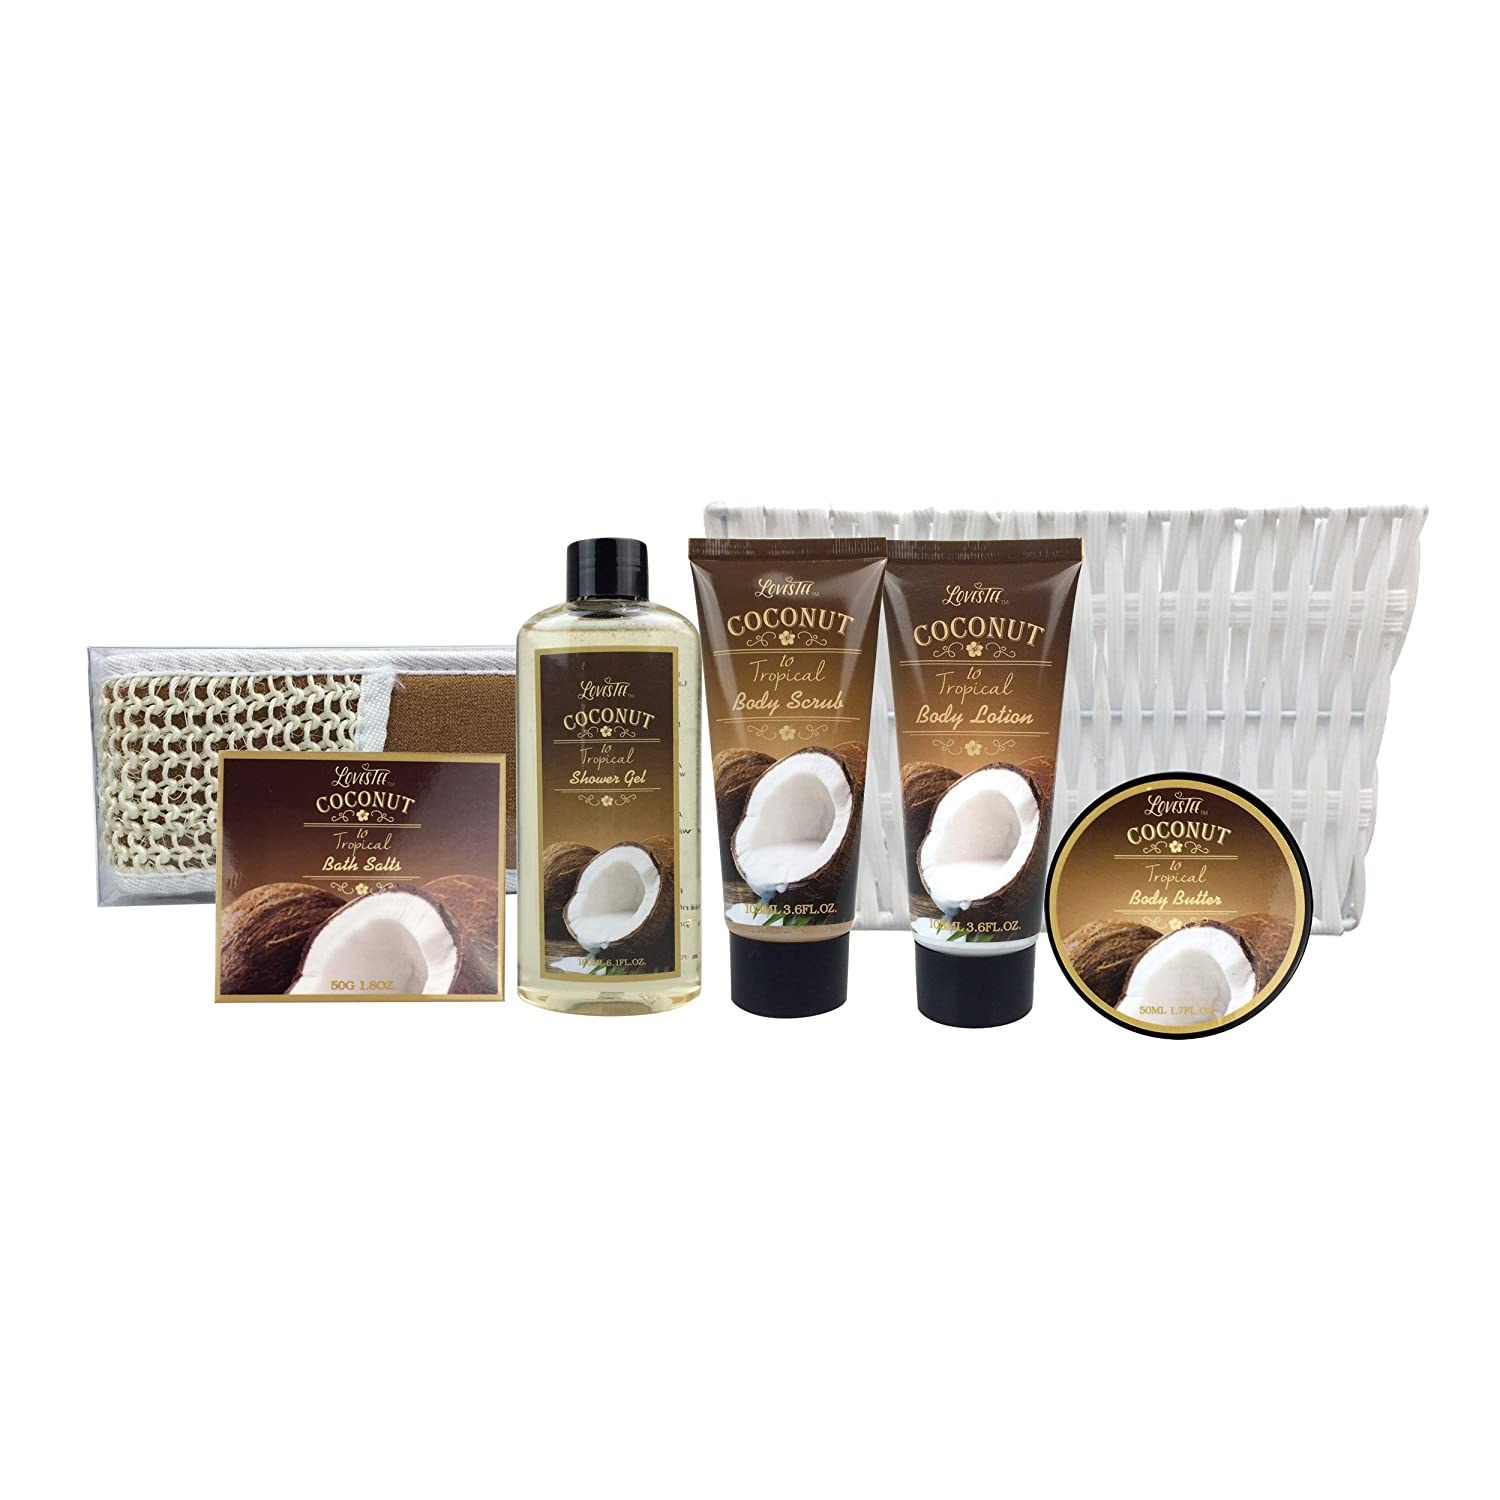 Amazon.com : Spa Gift Basket and Bath Set with Refreshing Coconut ...